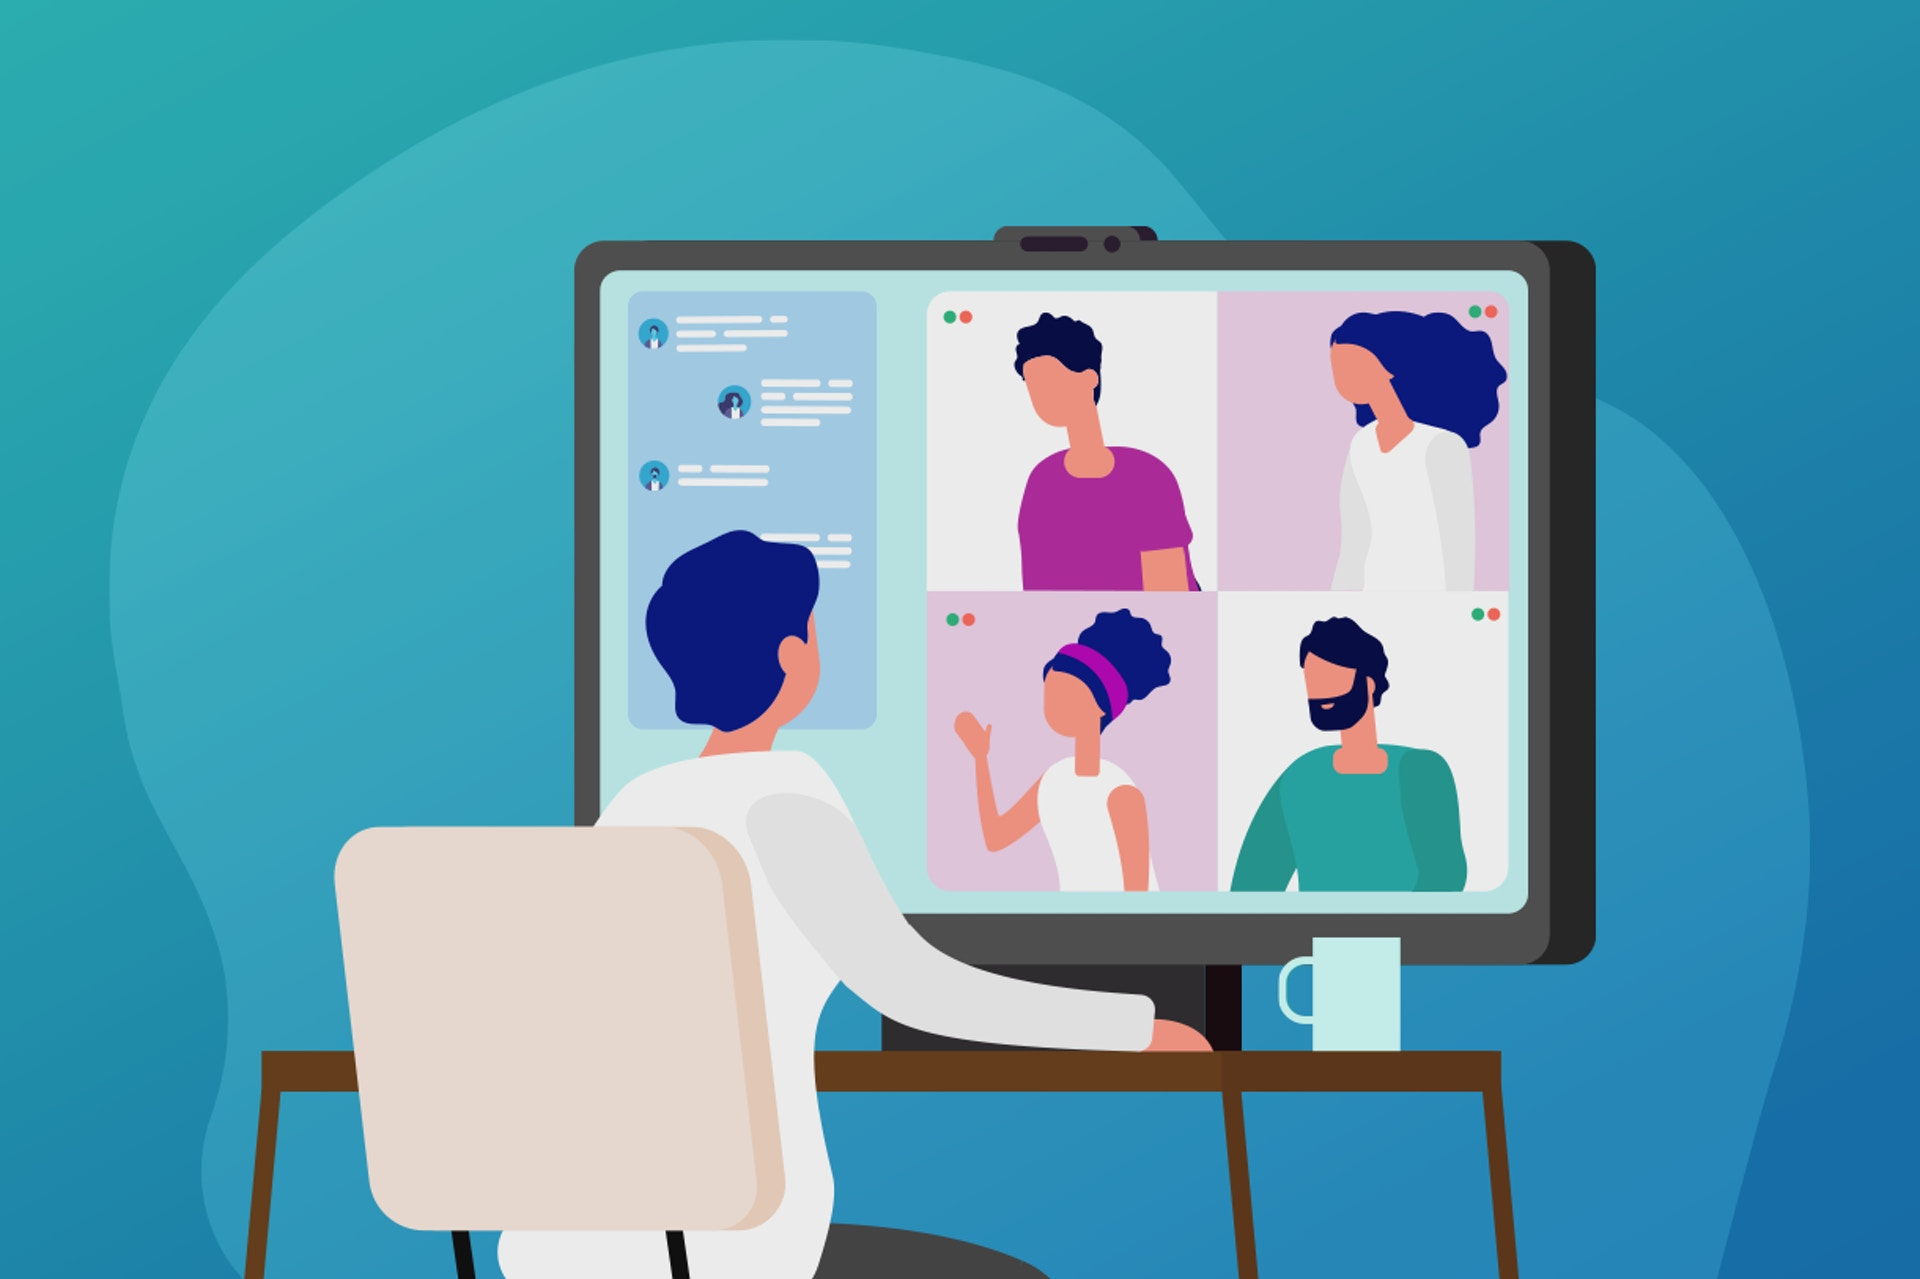 Illustration of a person in a virtual meeting against a blue background